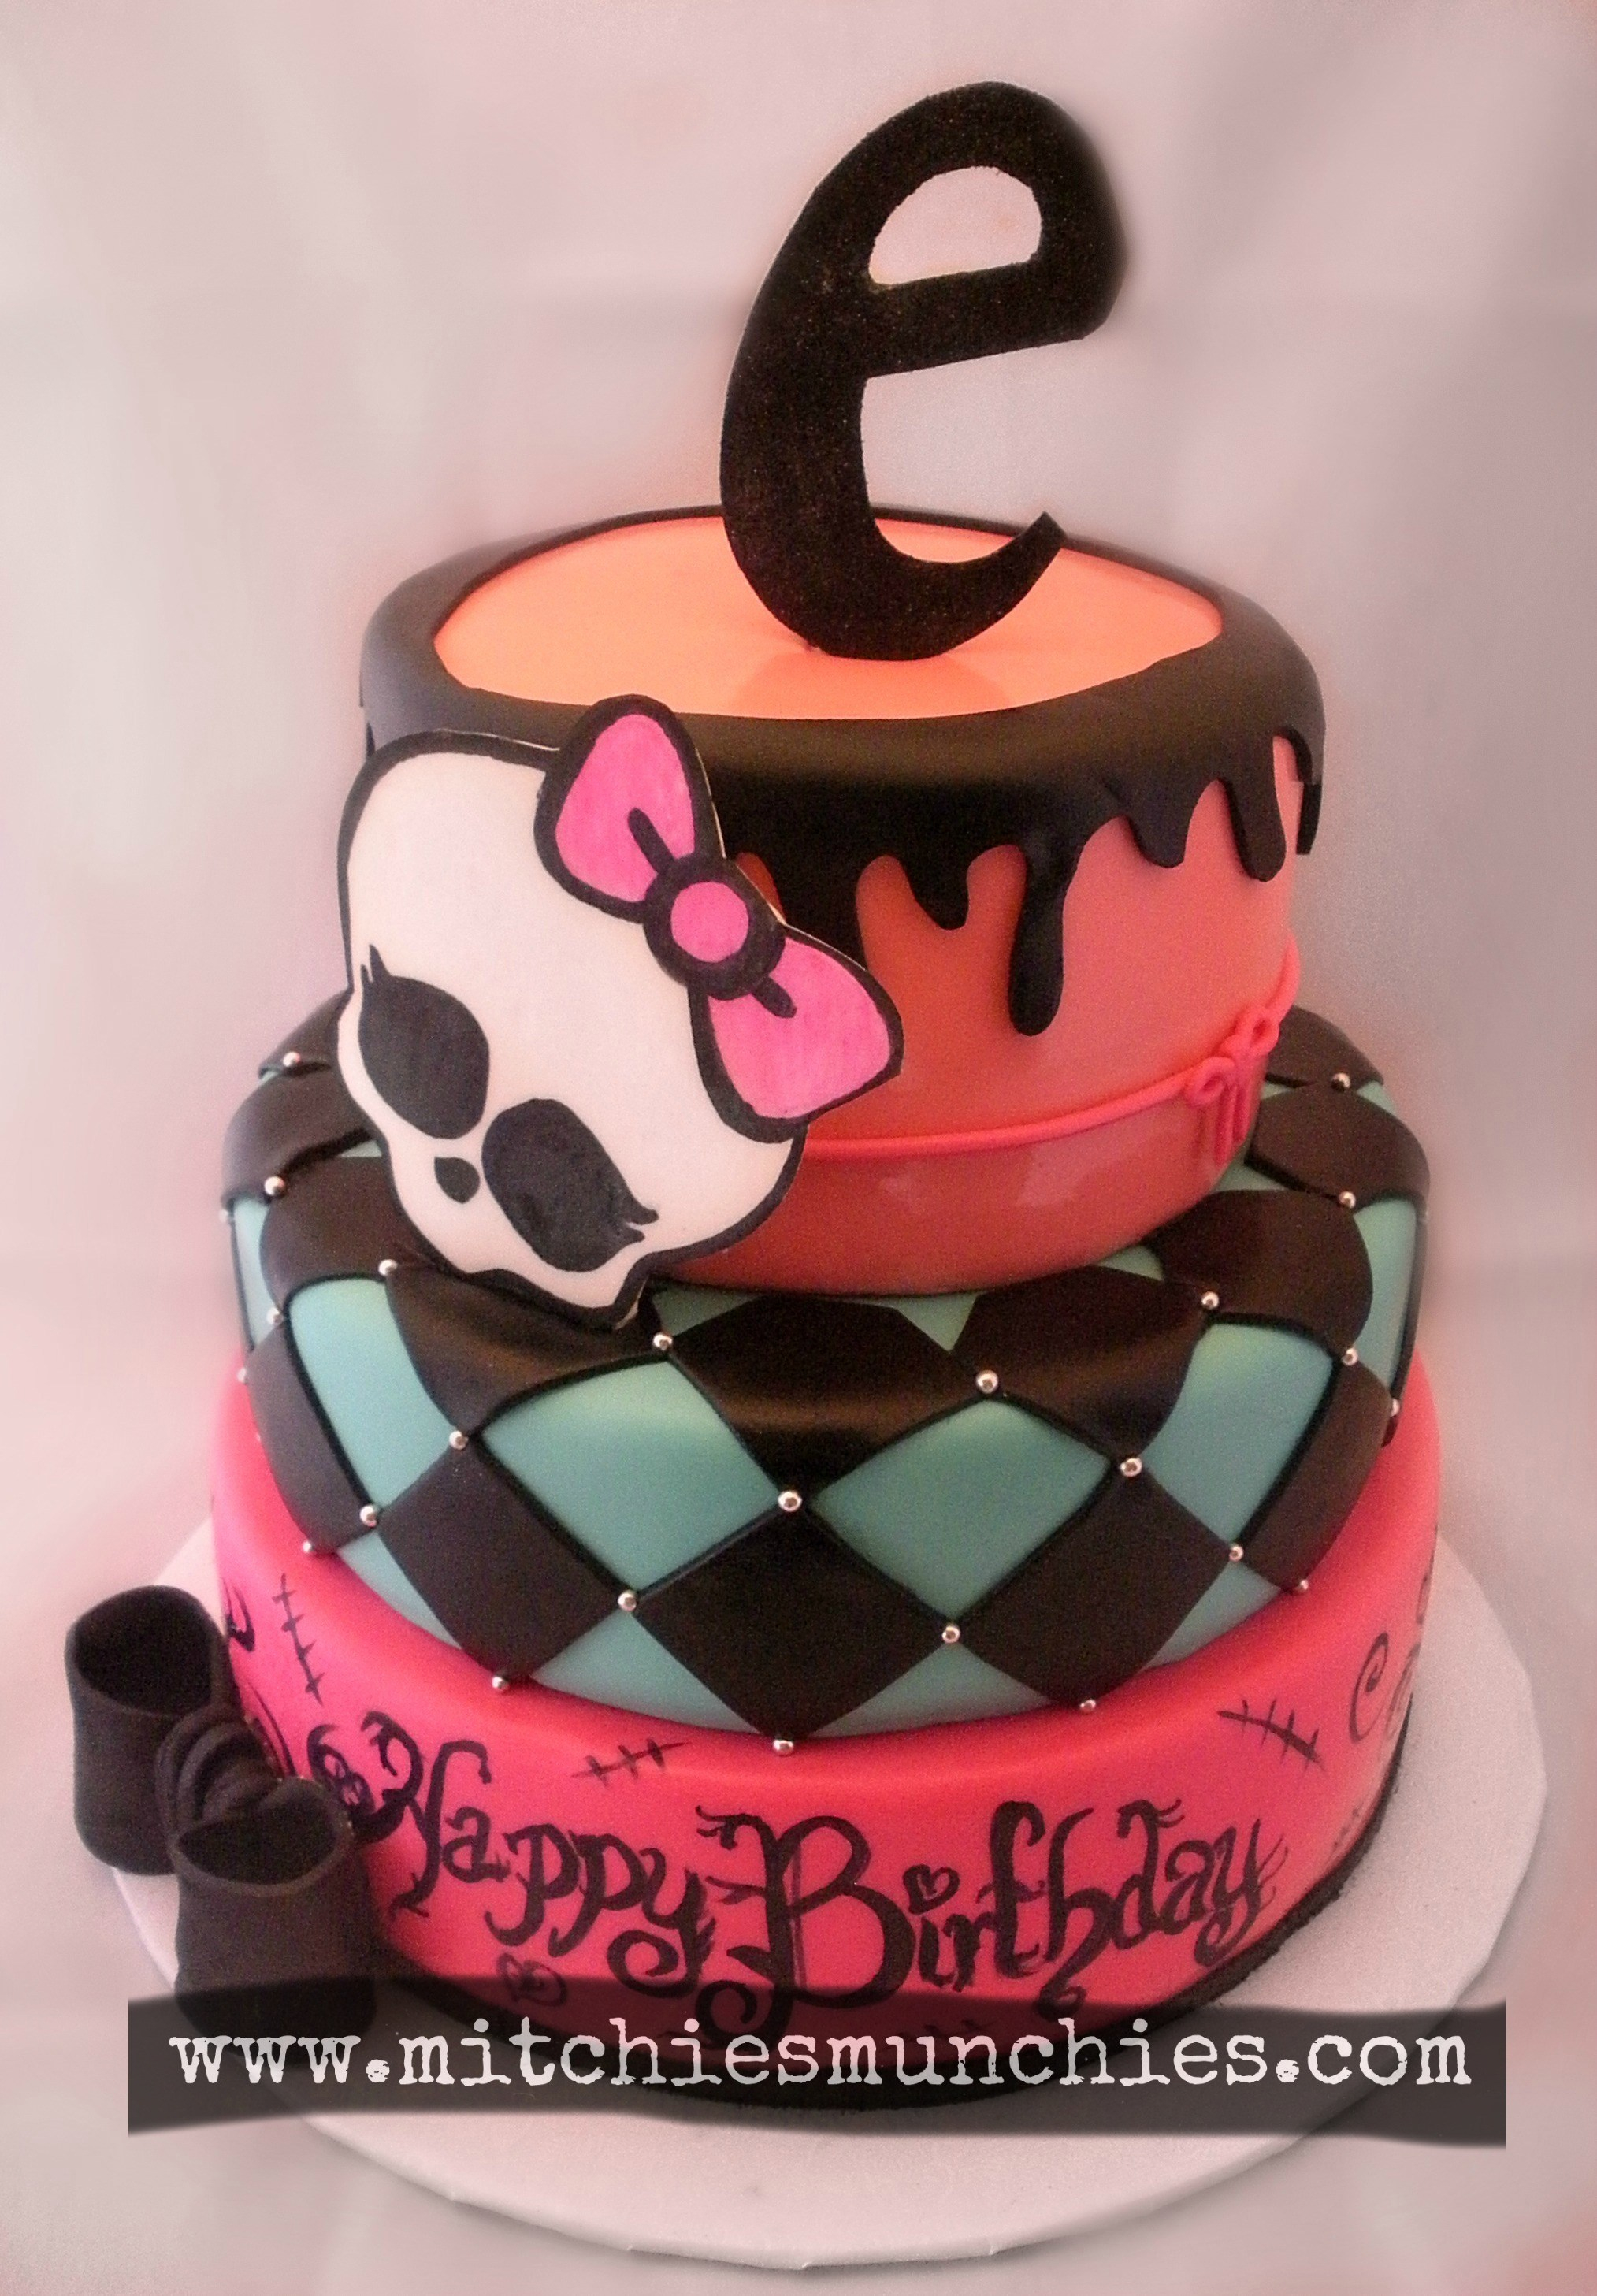 2914 In 32 Brilliant Picture Of Monster High Birthday Cake